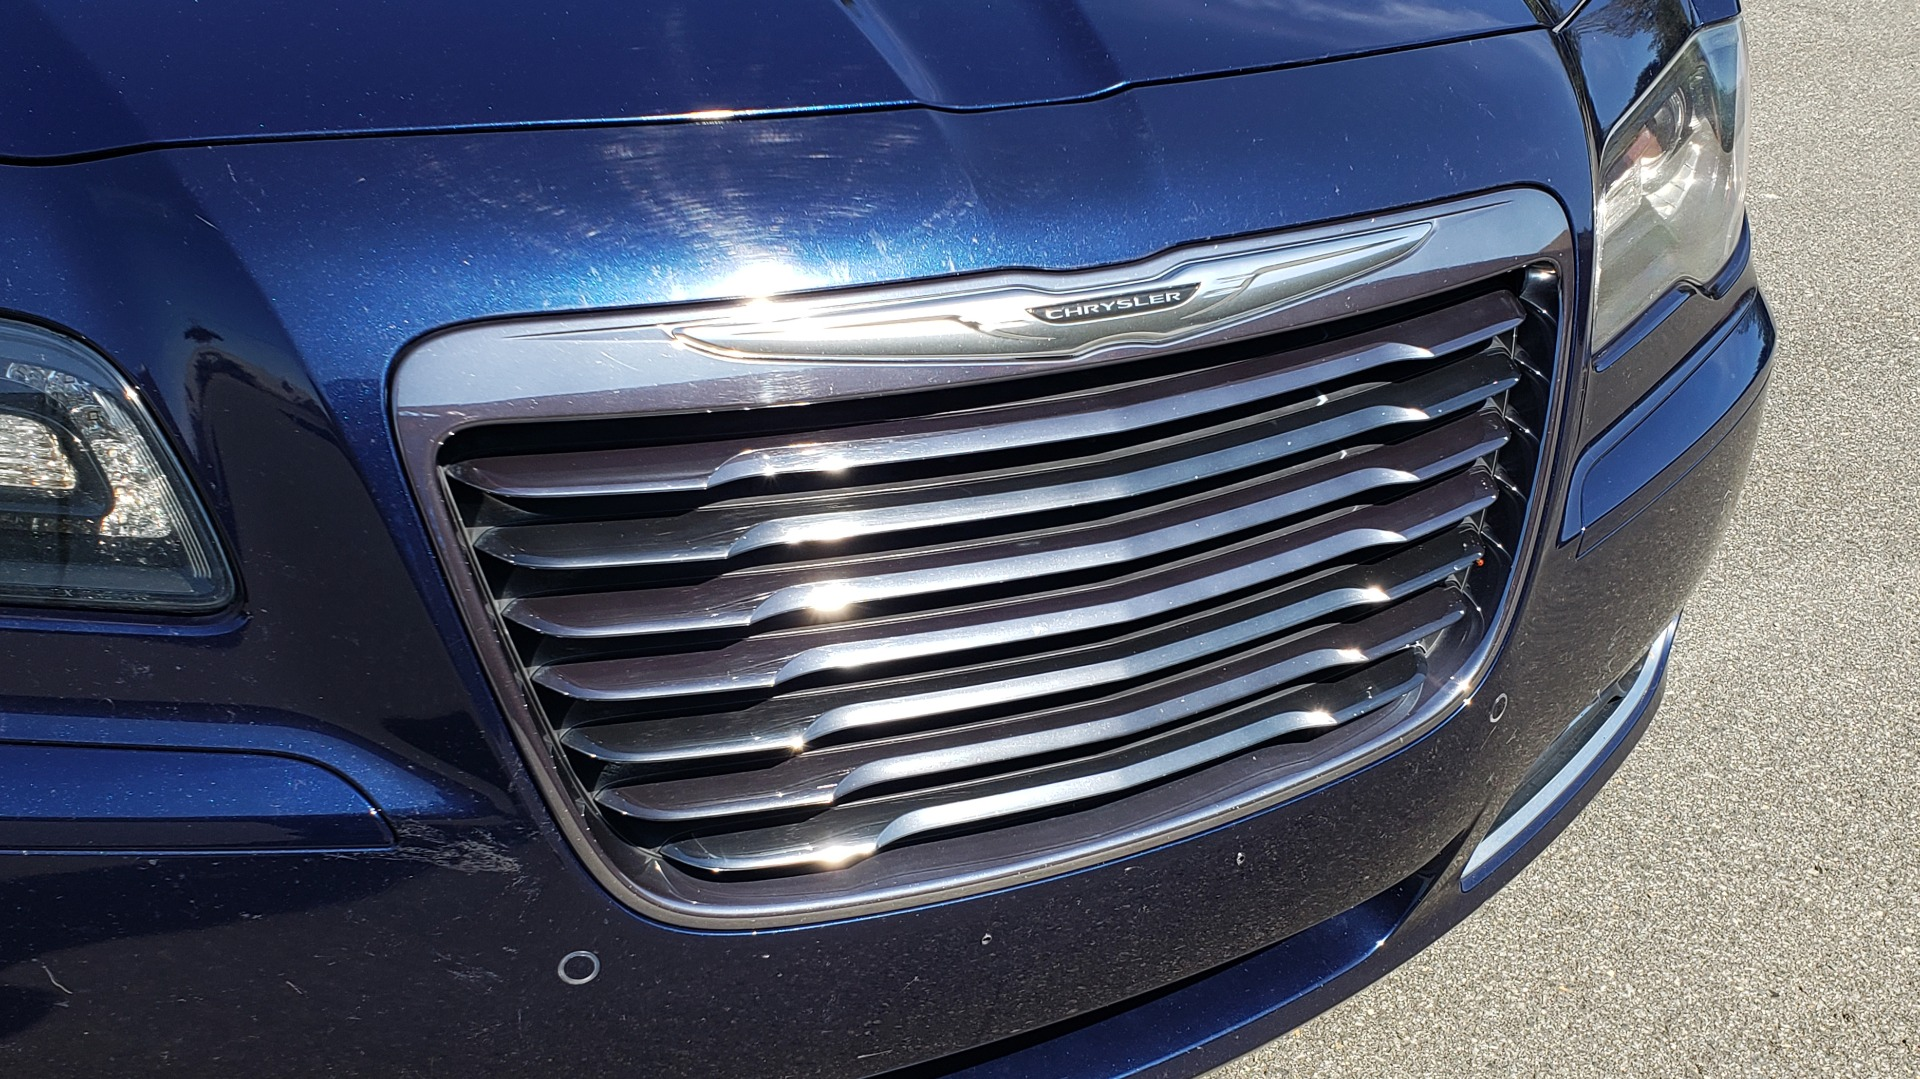 Used 2014 Chrysler 300 S AWD / SAFETY TEC / BLIND SPOT / LIGHT GRP / LUXURY GRP for sale $13,995 at Formula Imports in Charlotte NC 28227 23